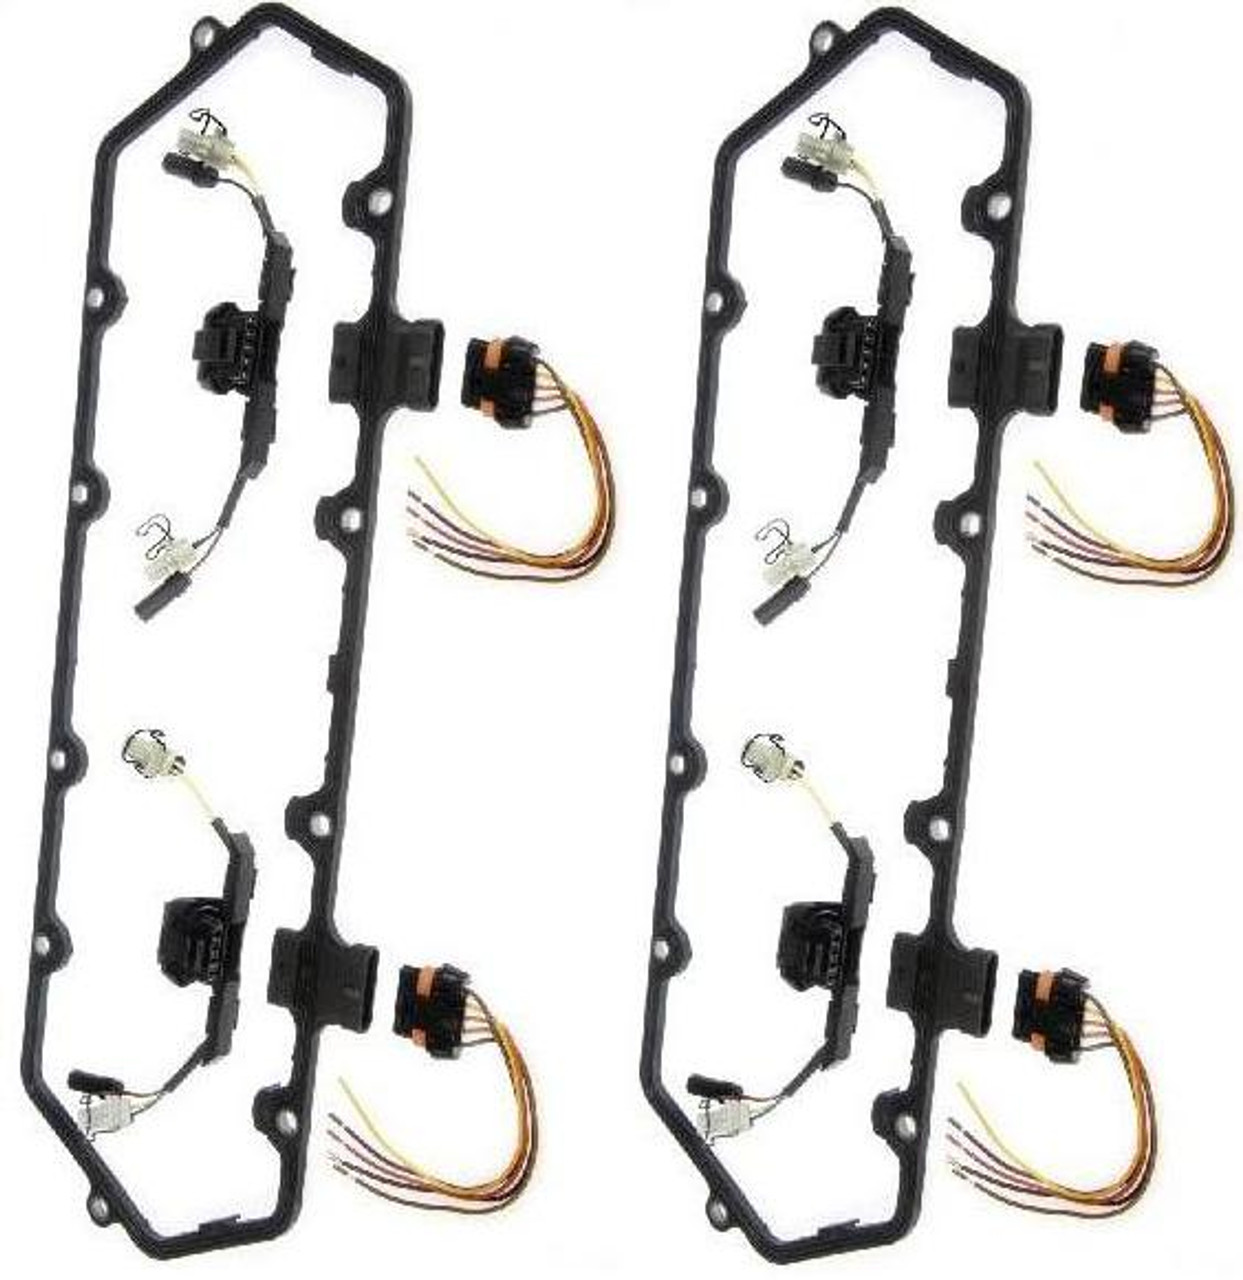 615_202_DUALvalve_cover_gasket_71029.1363116372.1280__91177.1363281390?c=2 dorman 94 97 ford dual valve cover gasket with fuel injector wiring harness for fuel injection at readyjetset.co